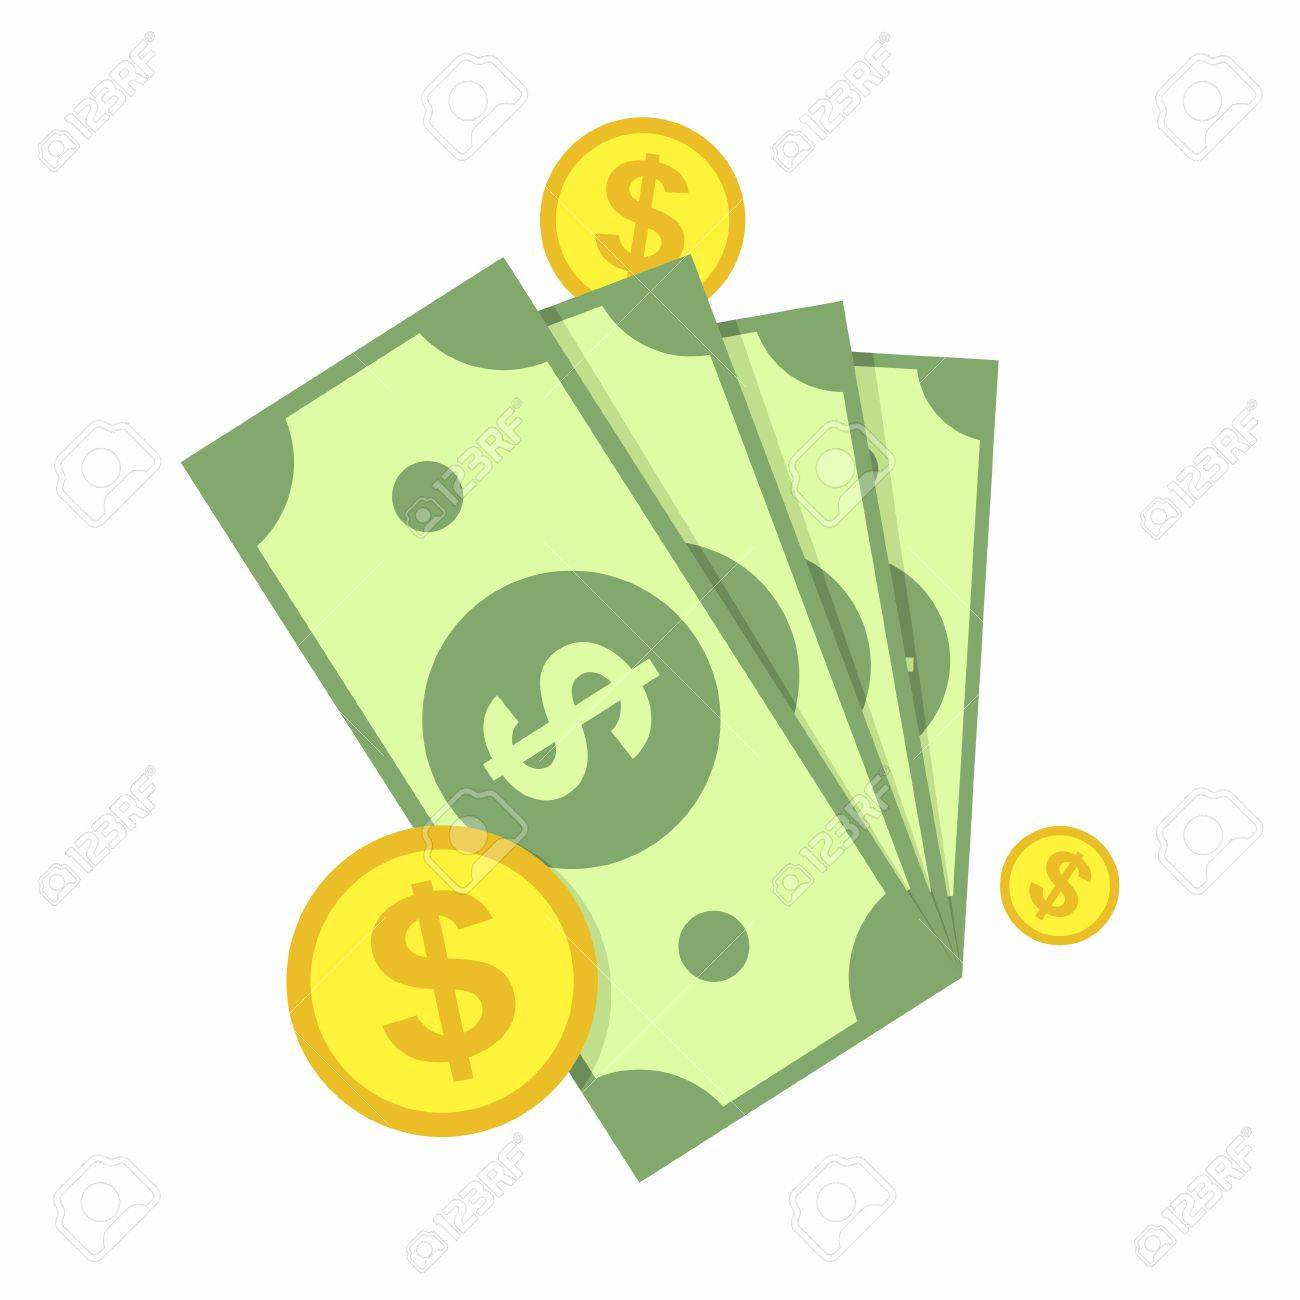 Cash, Green Dollars and Coin Icon isolated on white background. Money Vector Illustration. - 53961326